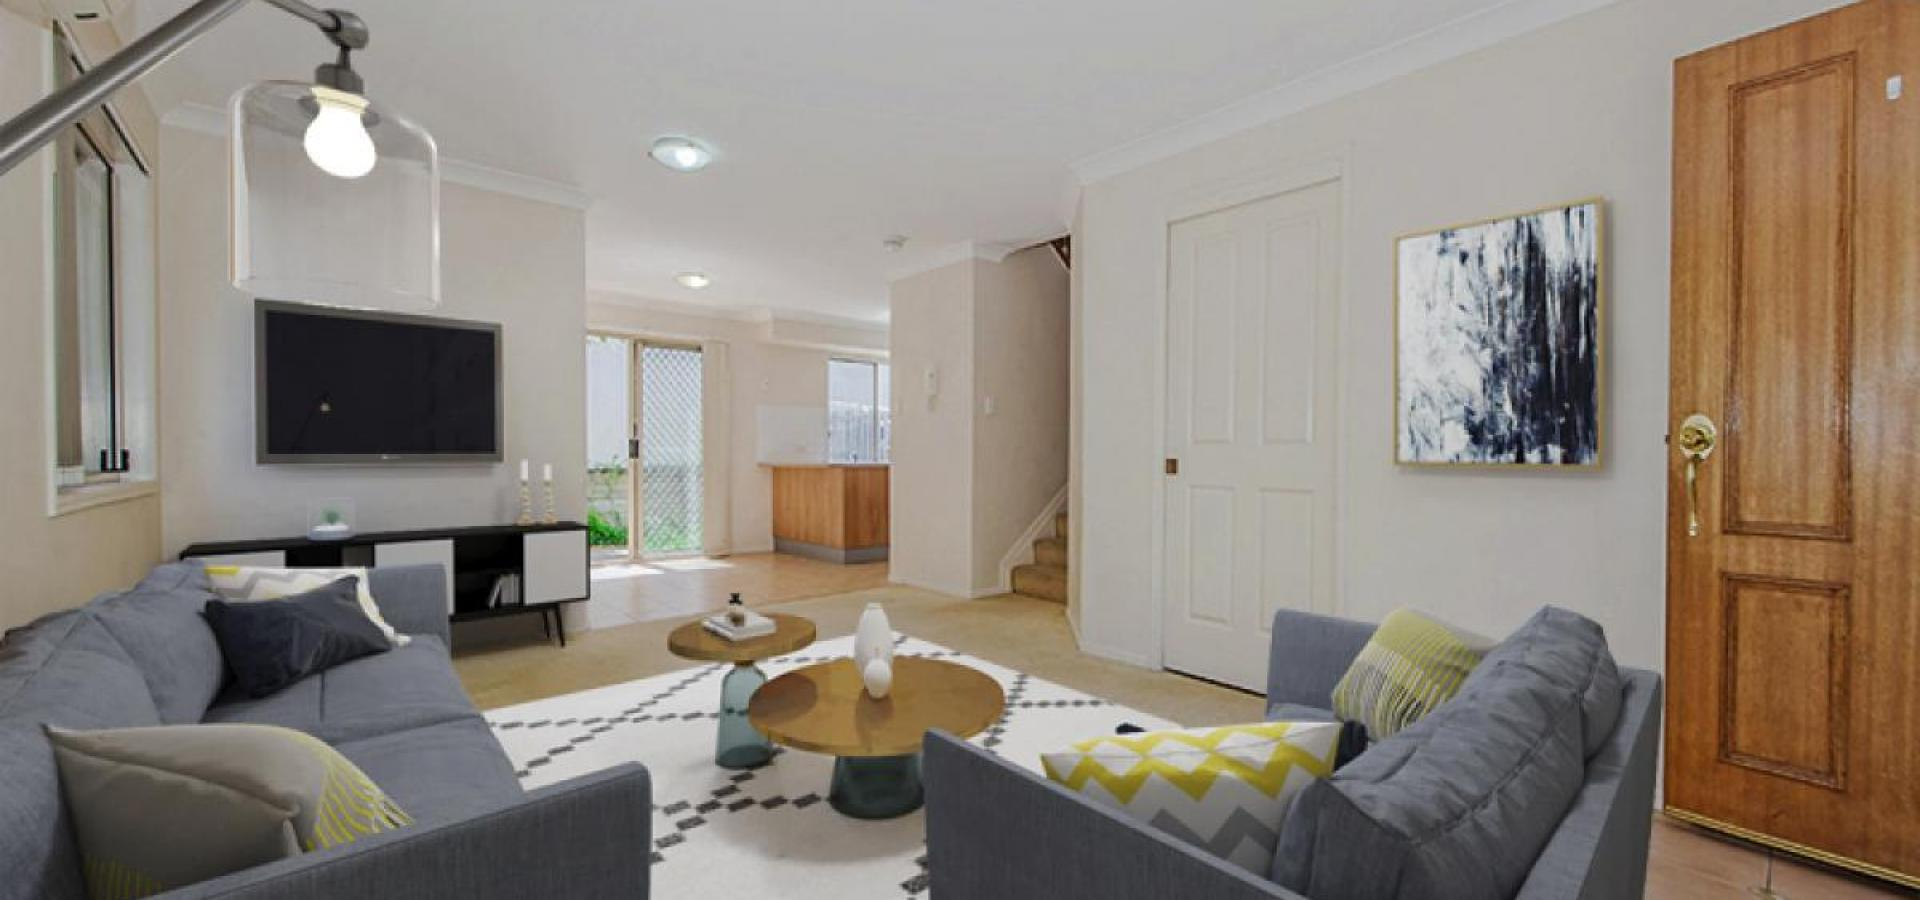 Value packed townhouse - rents for $420 per week